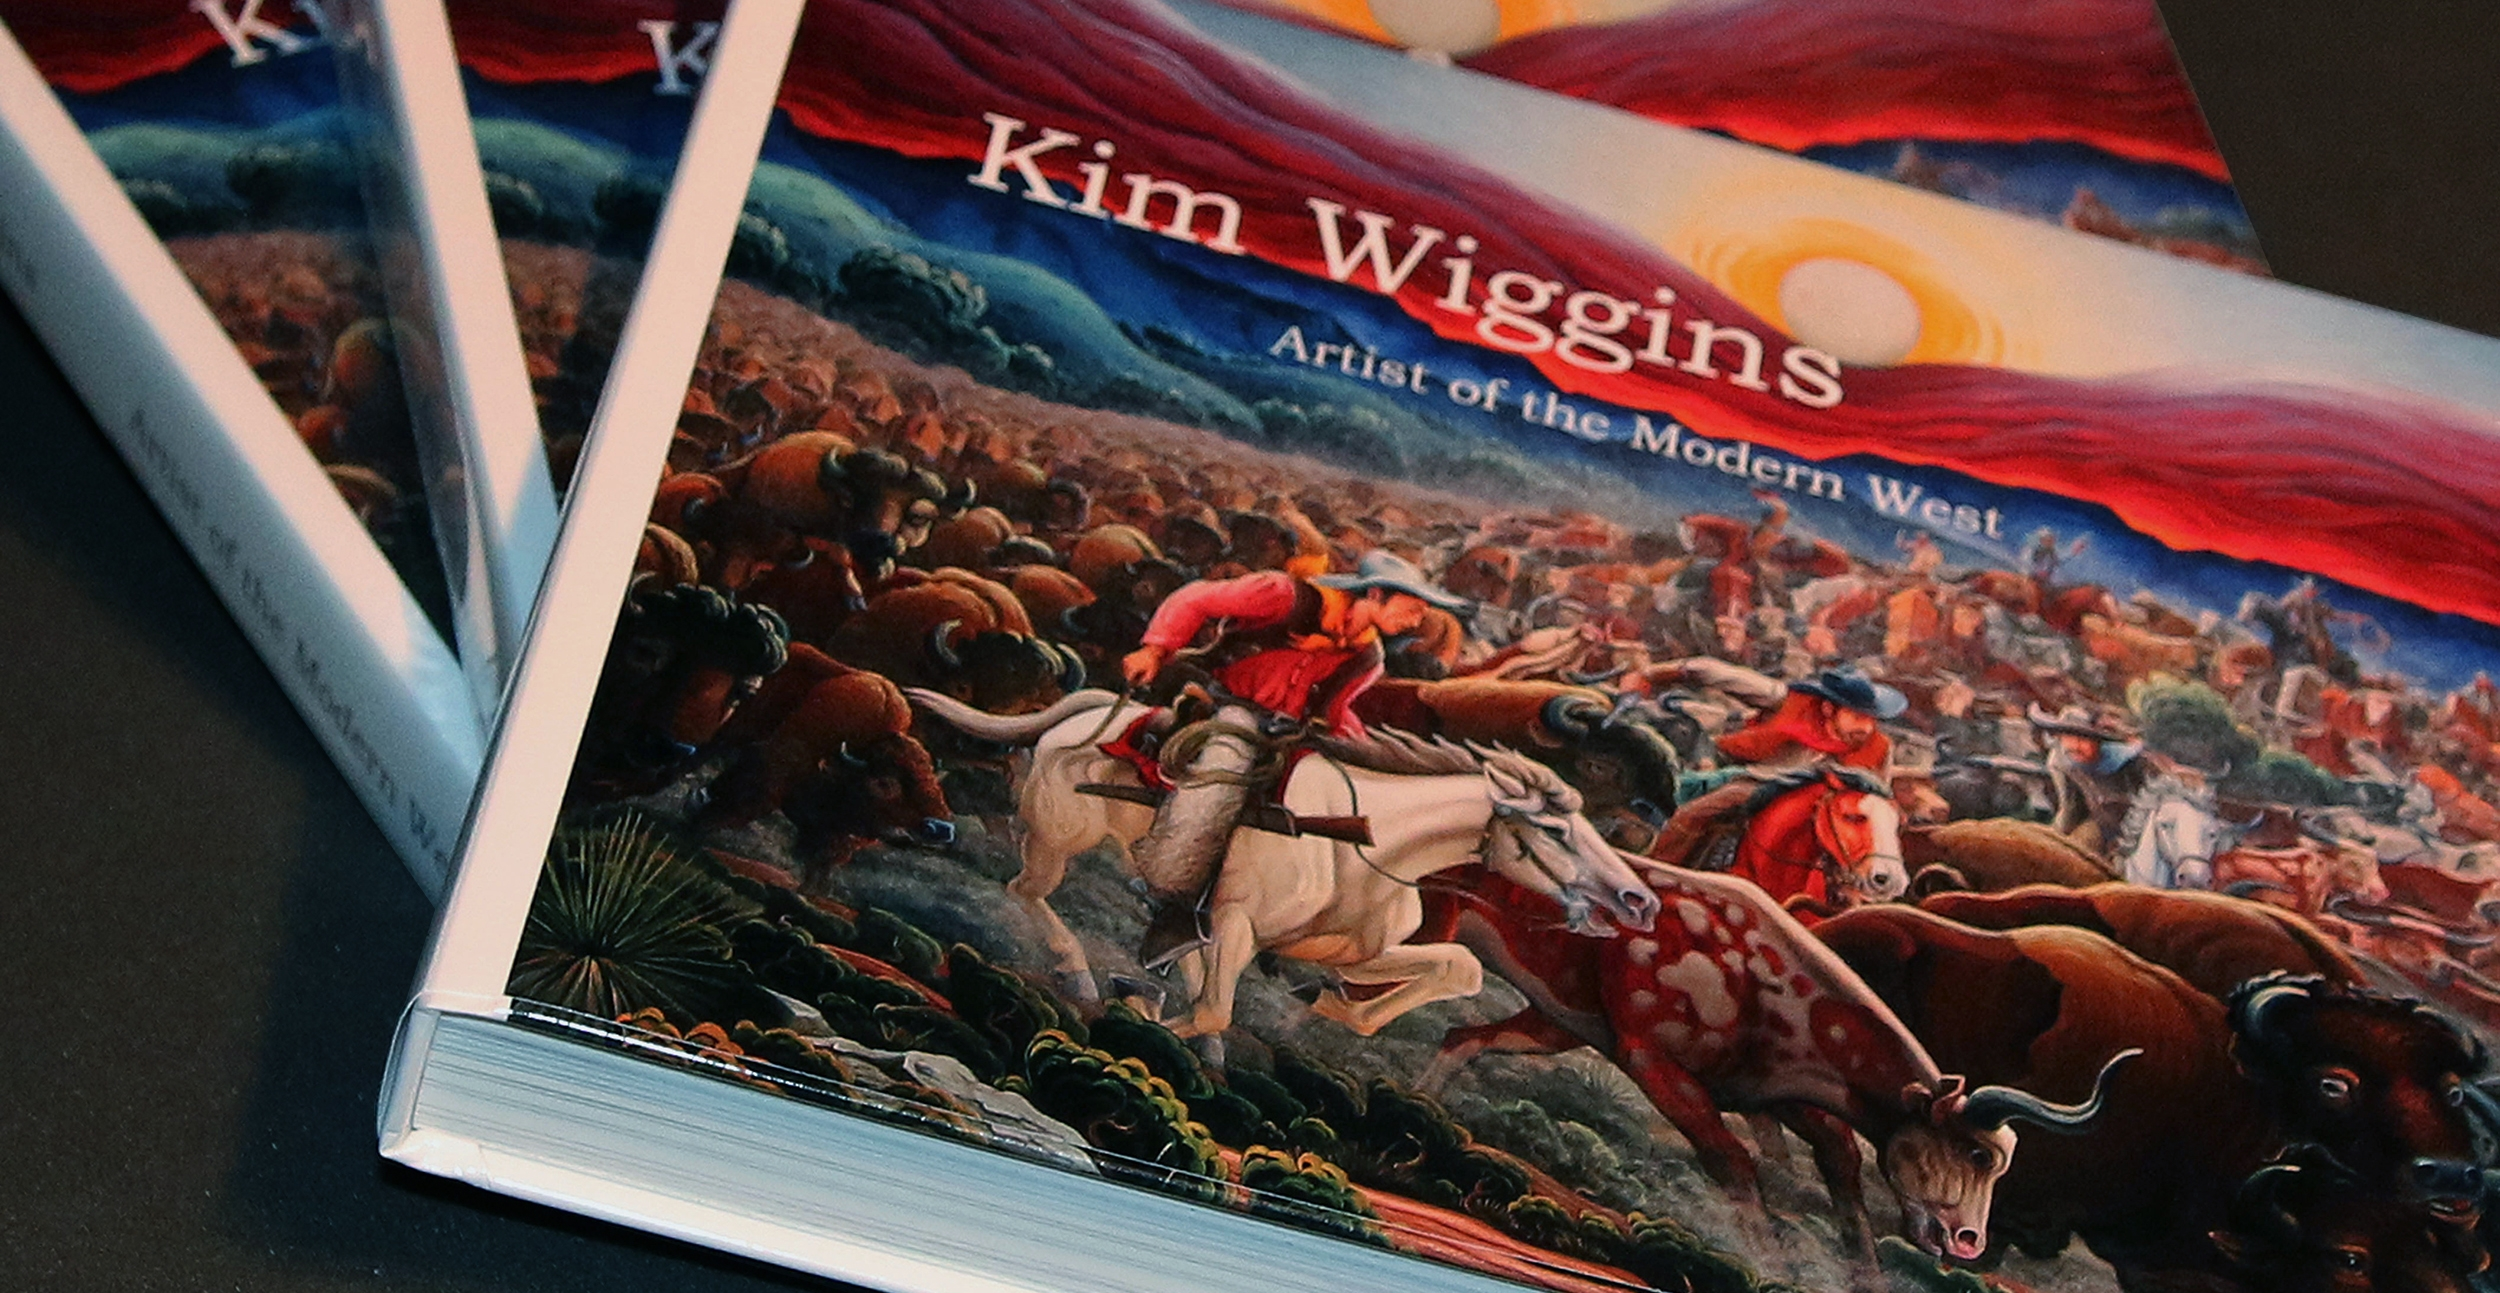 New Book:  Join the artist in Santa Fe this summer for the opening of his one-man show and preview of his new book,  Kim Wiggins, Artist of the Modern West . Friday, August 2rd, 2019, at Manitou Galleries of Santa Fe. (Book signing from 5 pm to 7 pm).